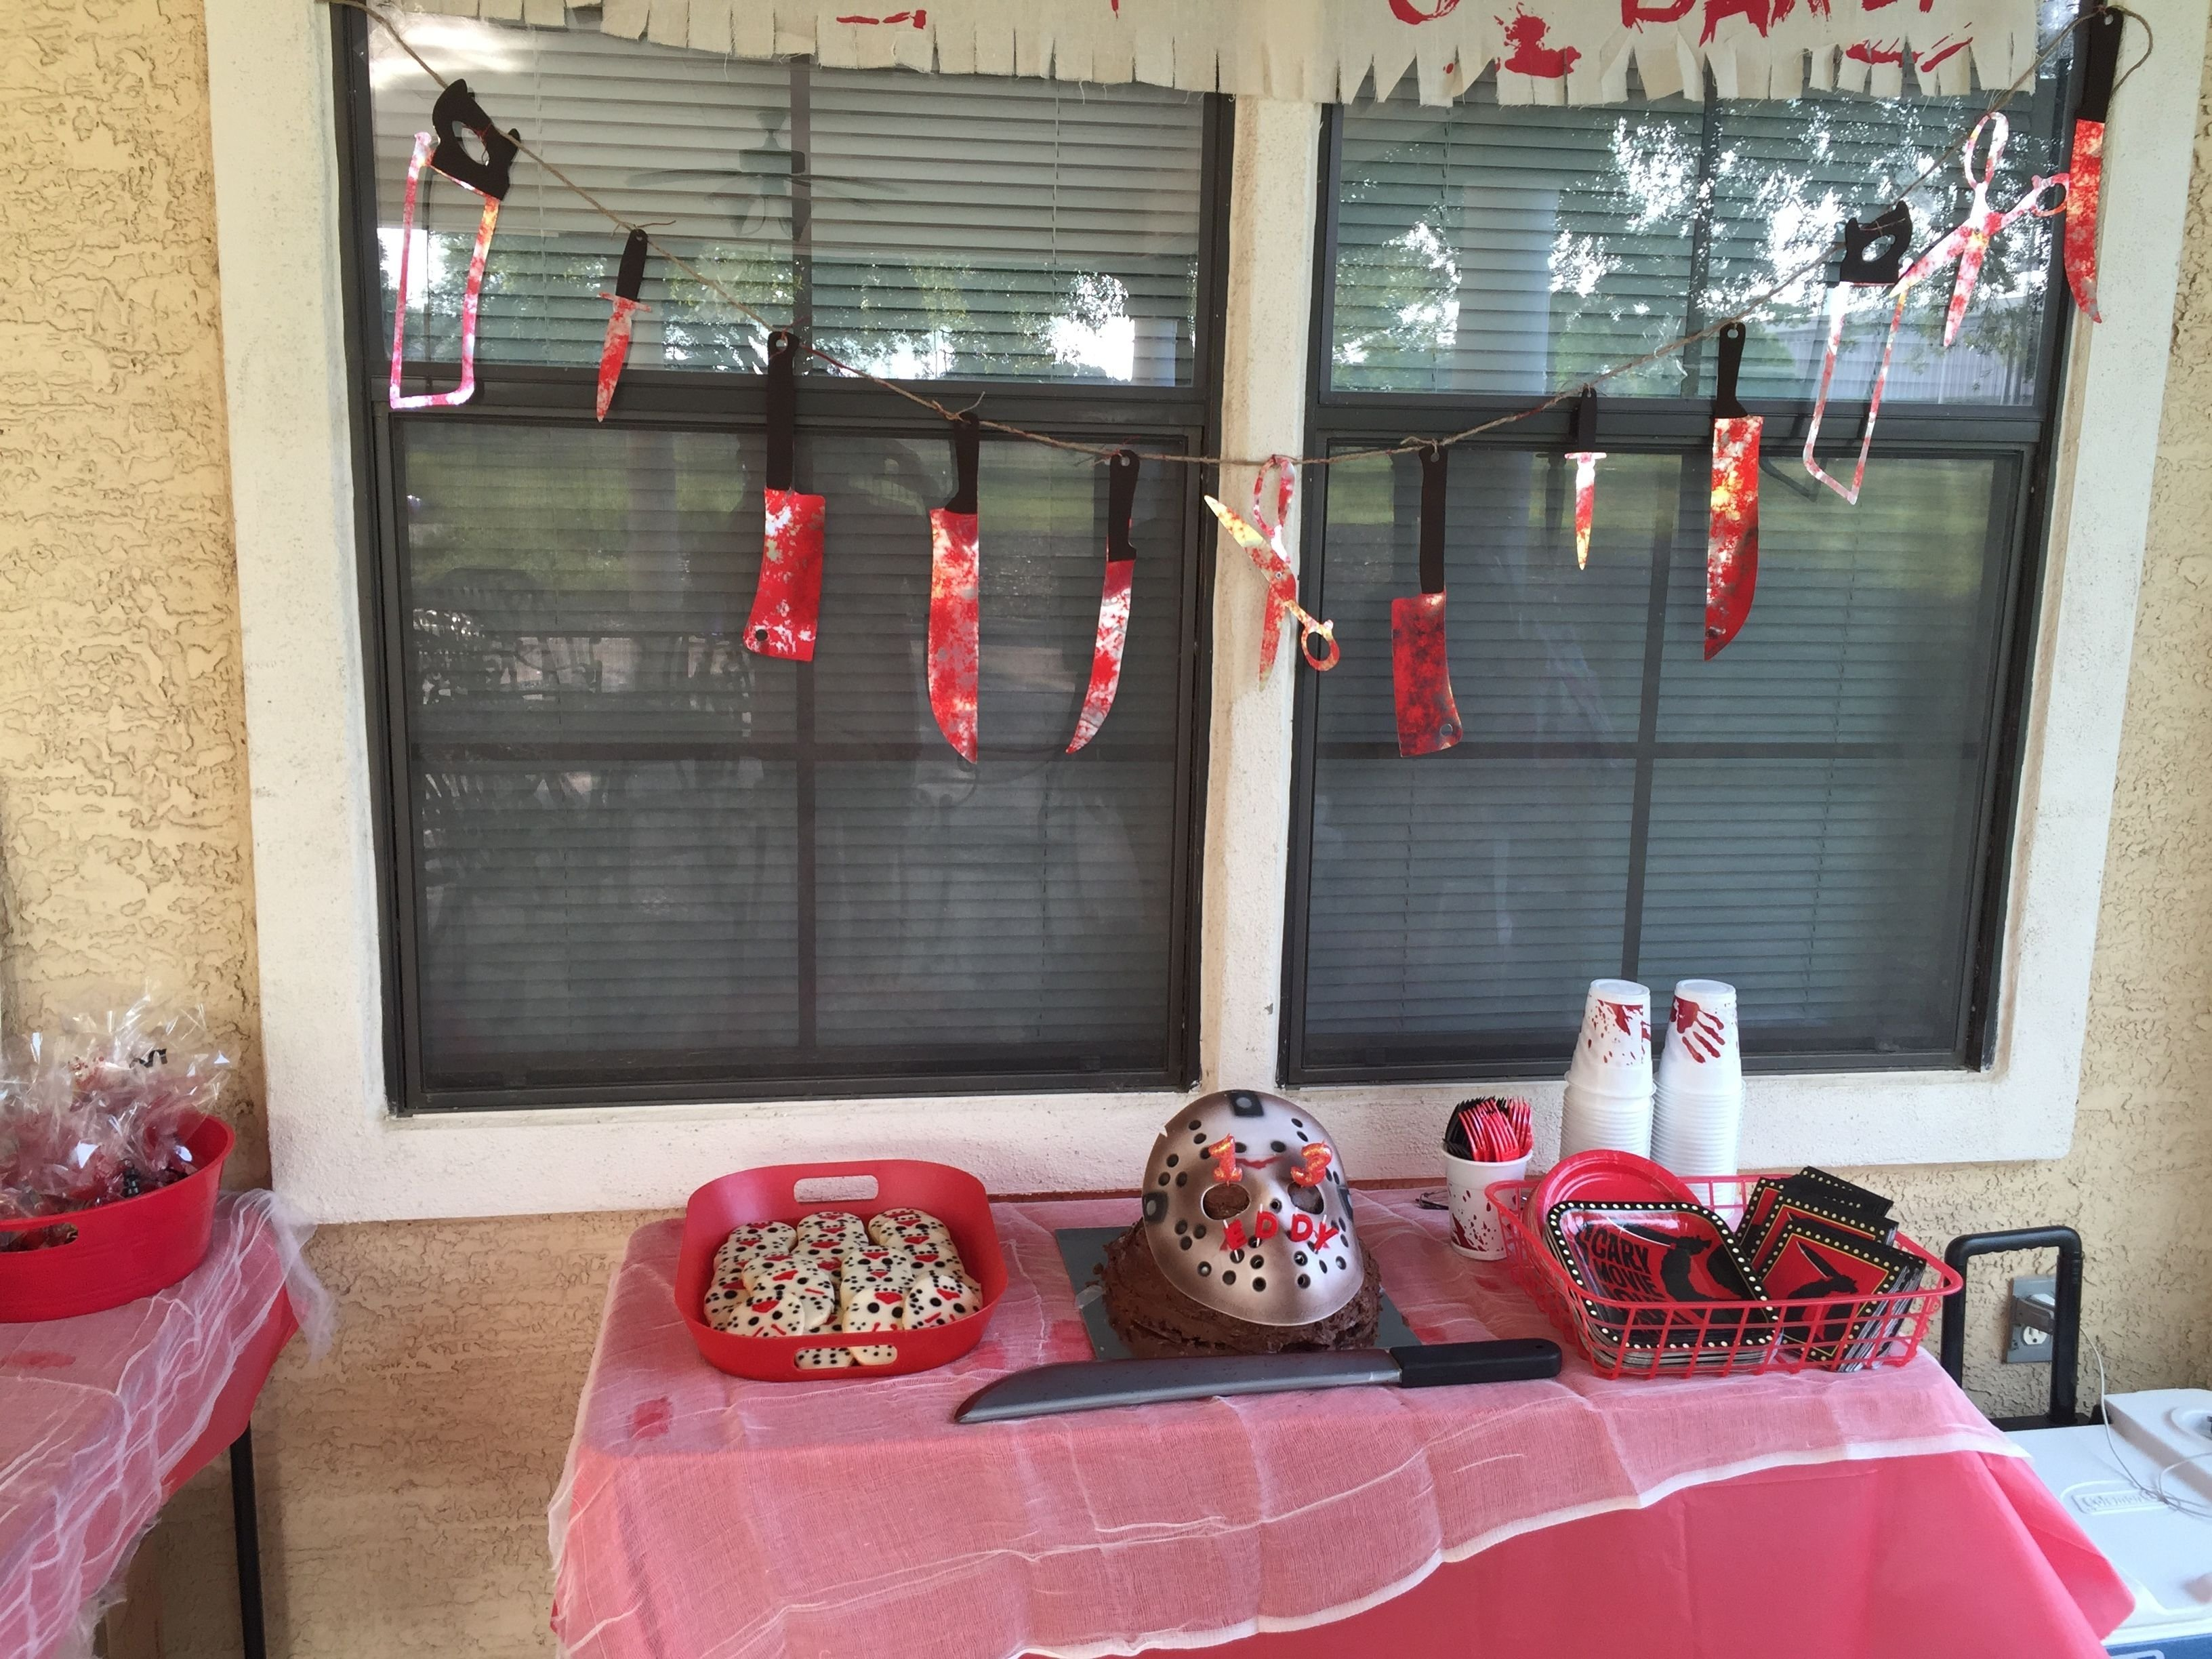 decorations for the friday the 13th birthday party. not bad for